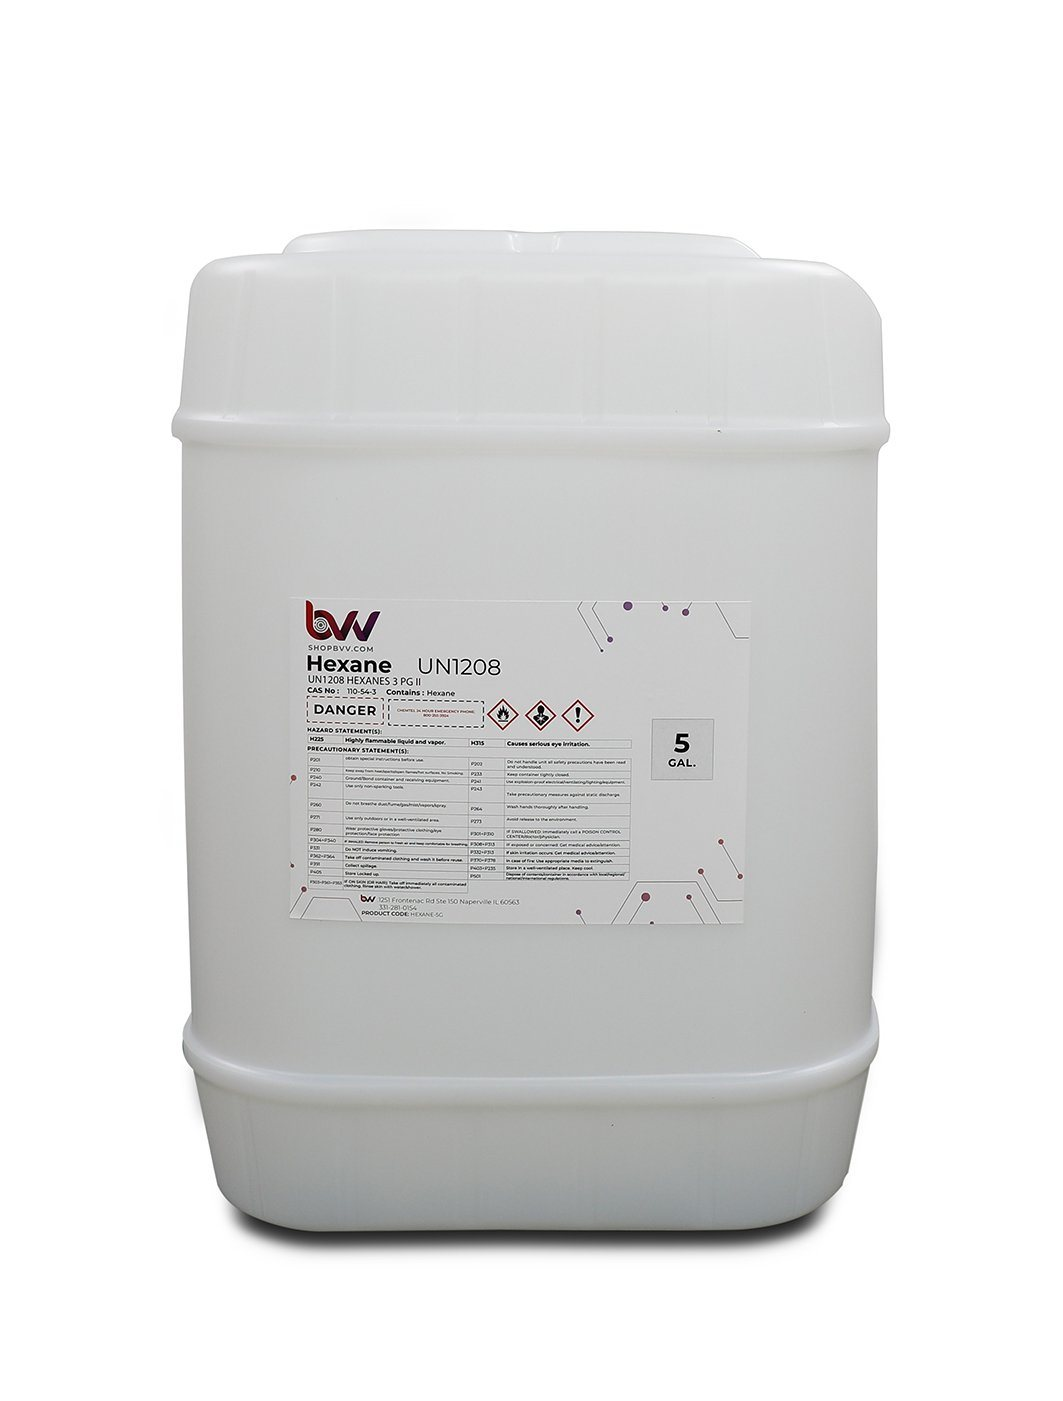 BVV High Purity Lab Grade Hexane Shop Brands BVV 5 Gallon